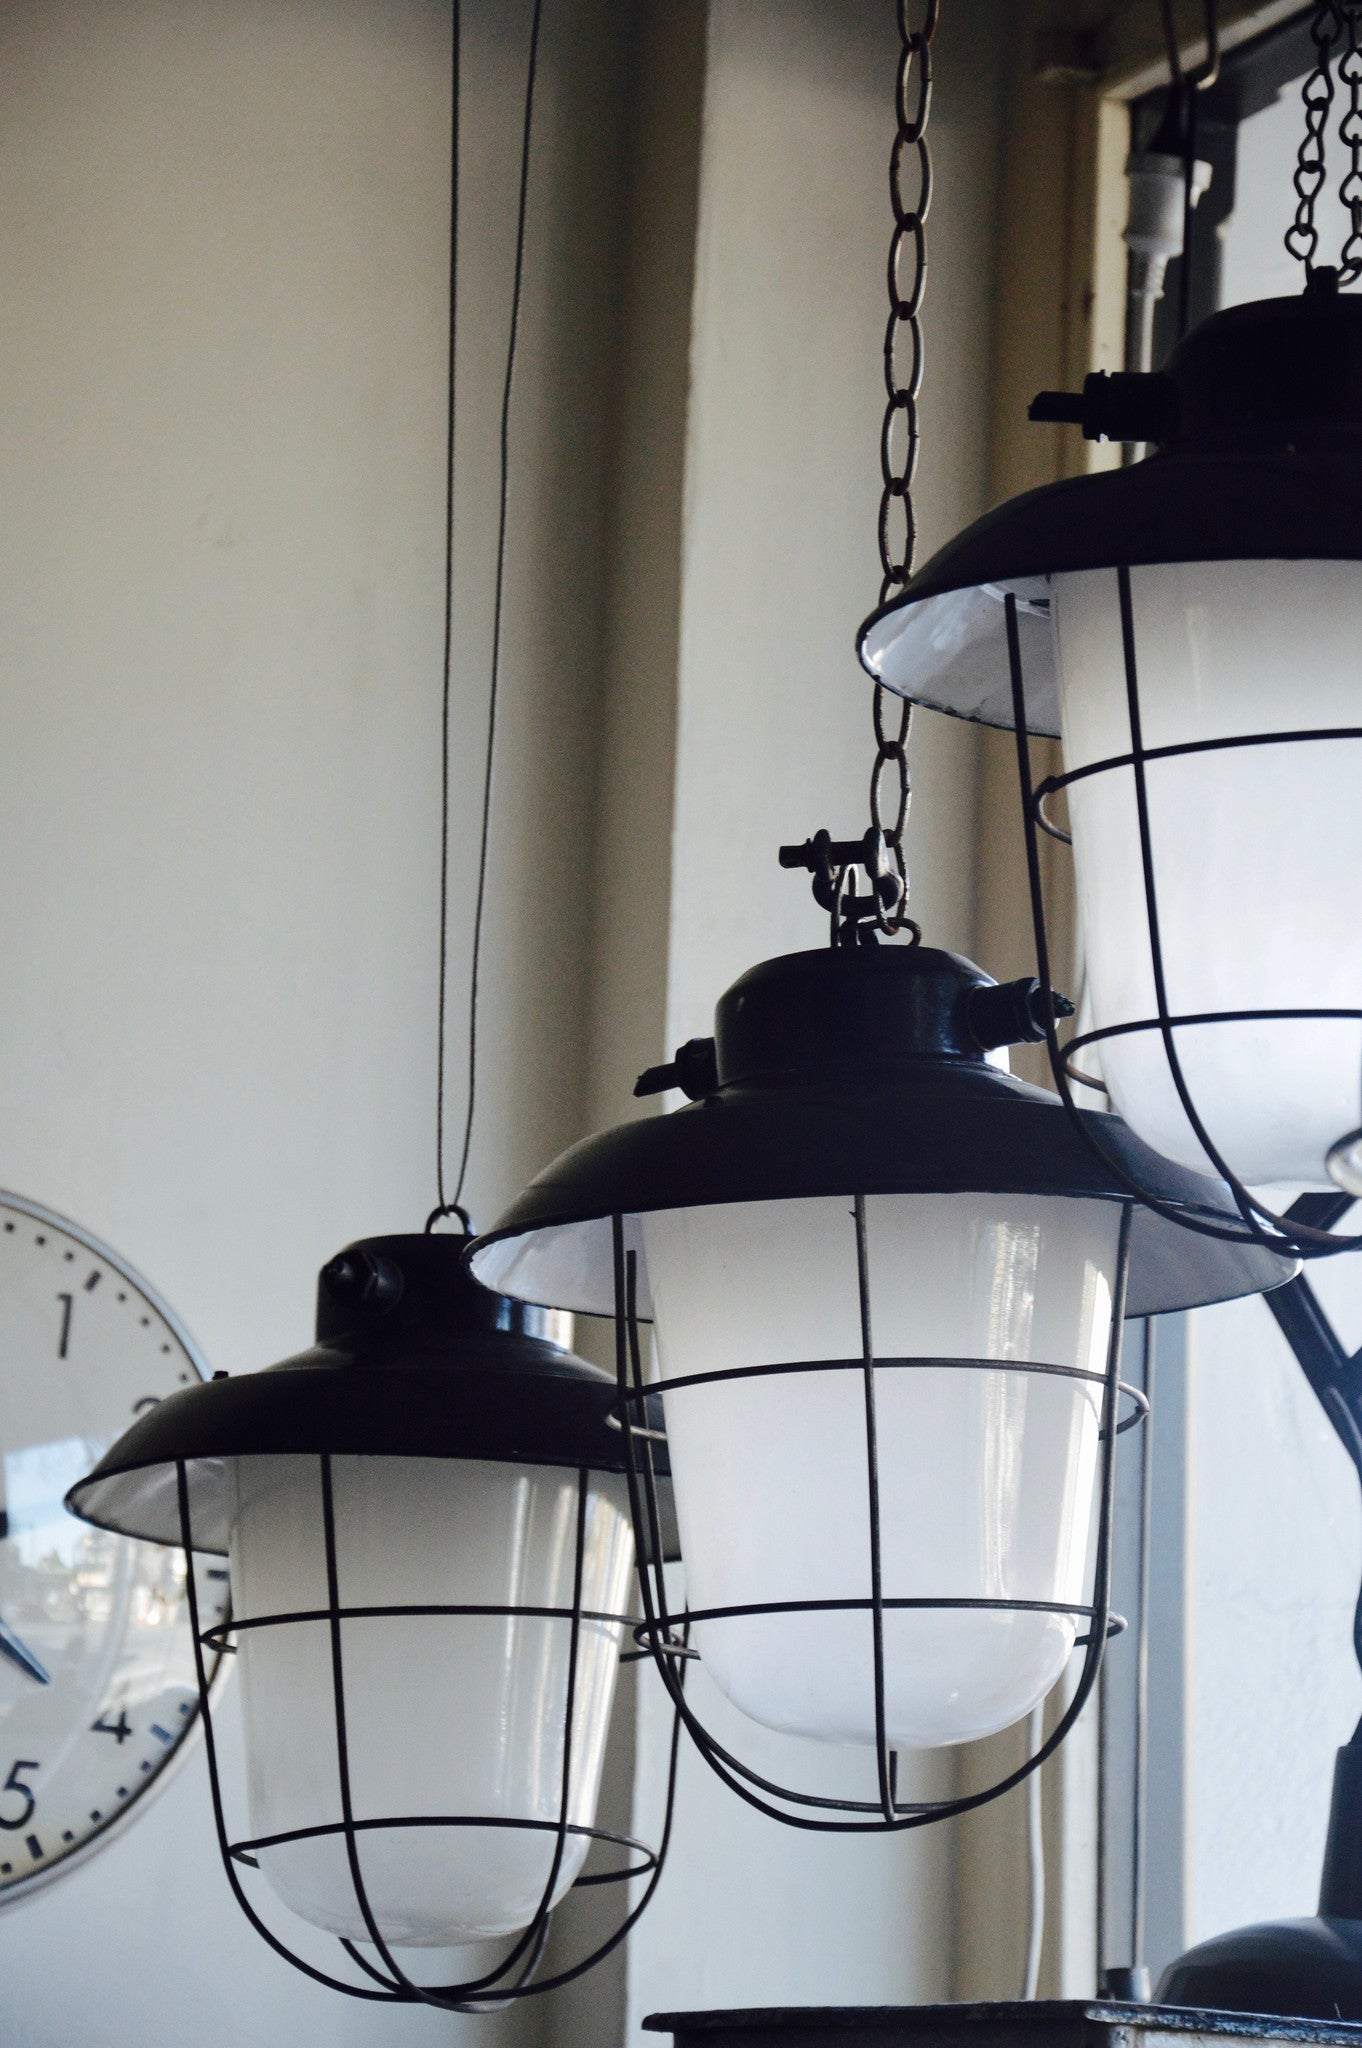 Home > Products > Vintage Industrial Factory Bunker Lights